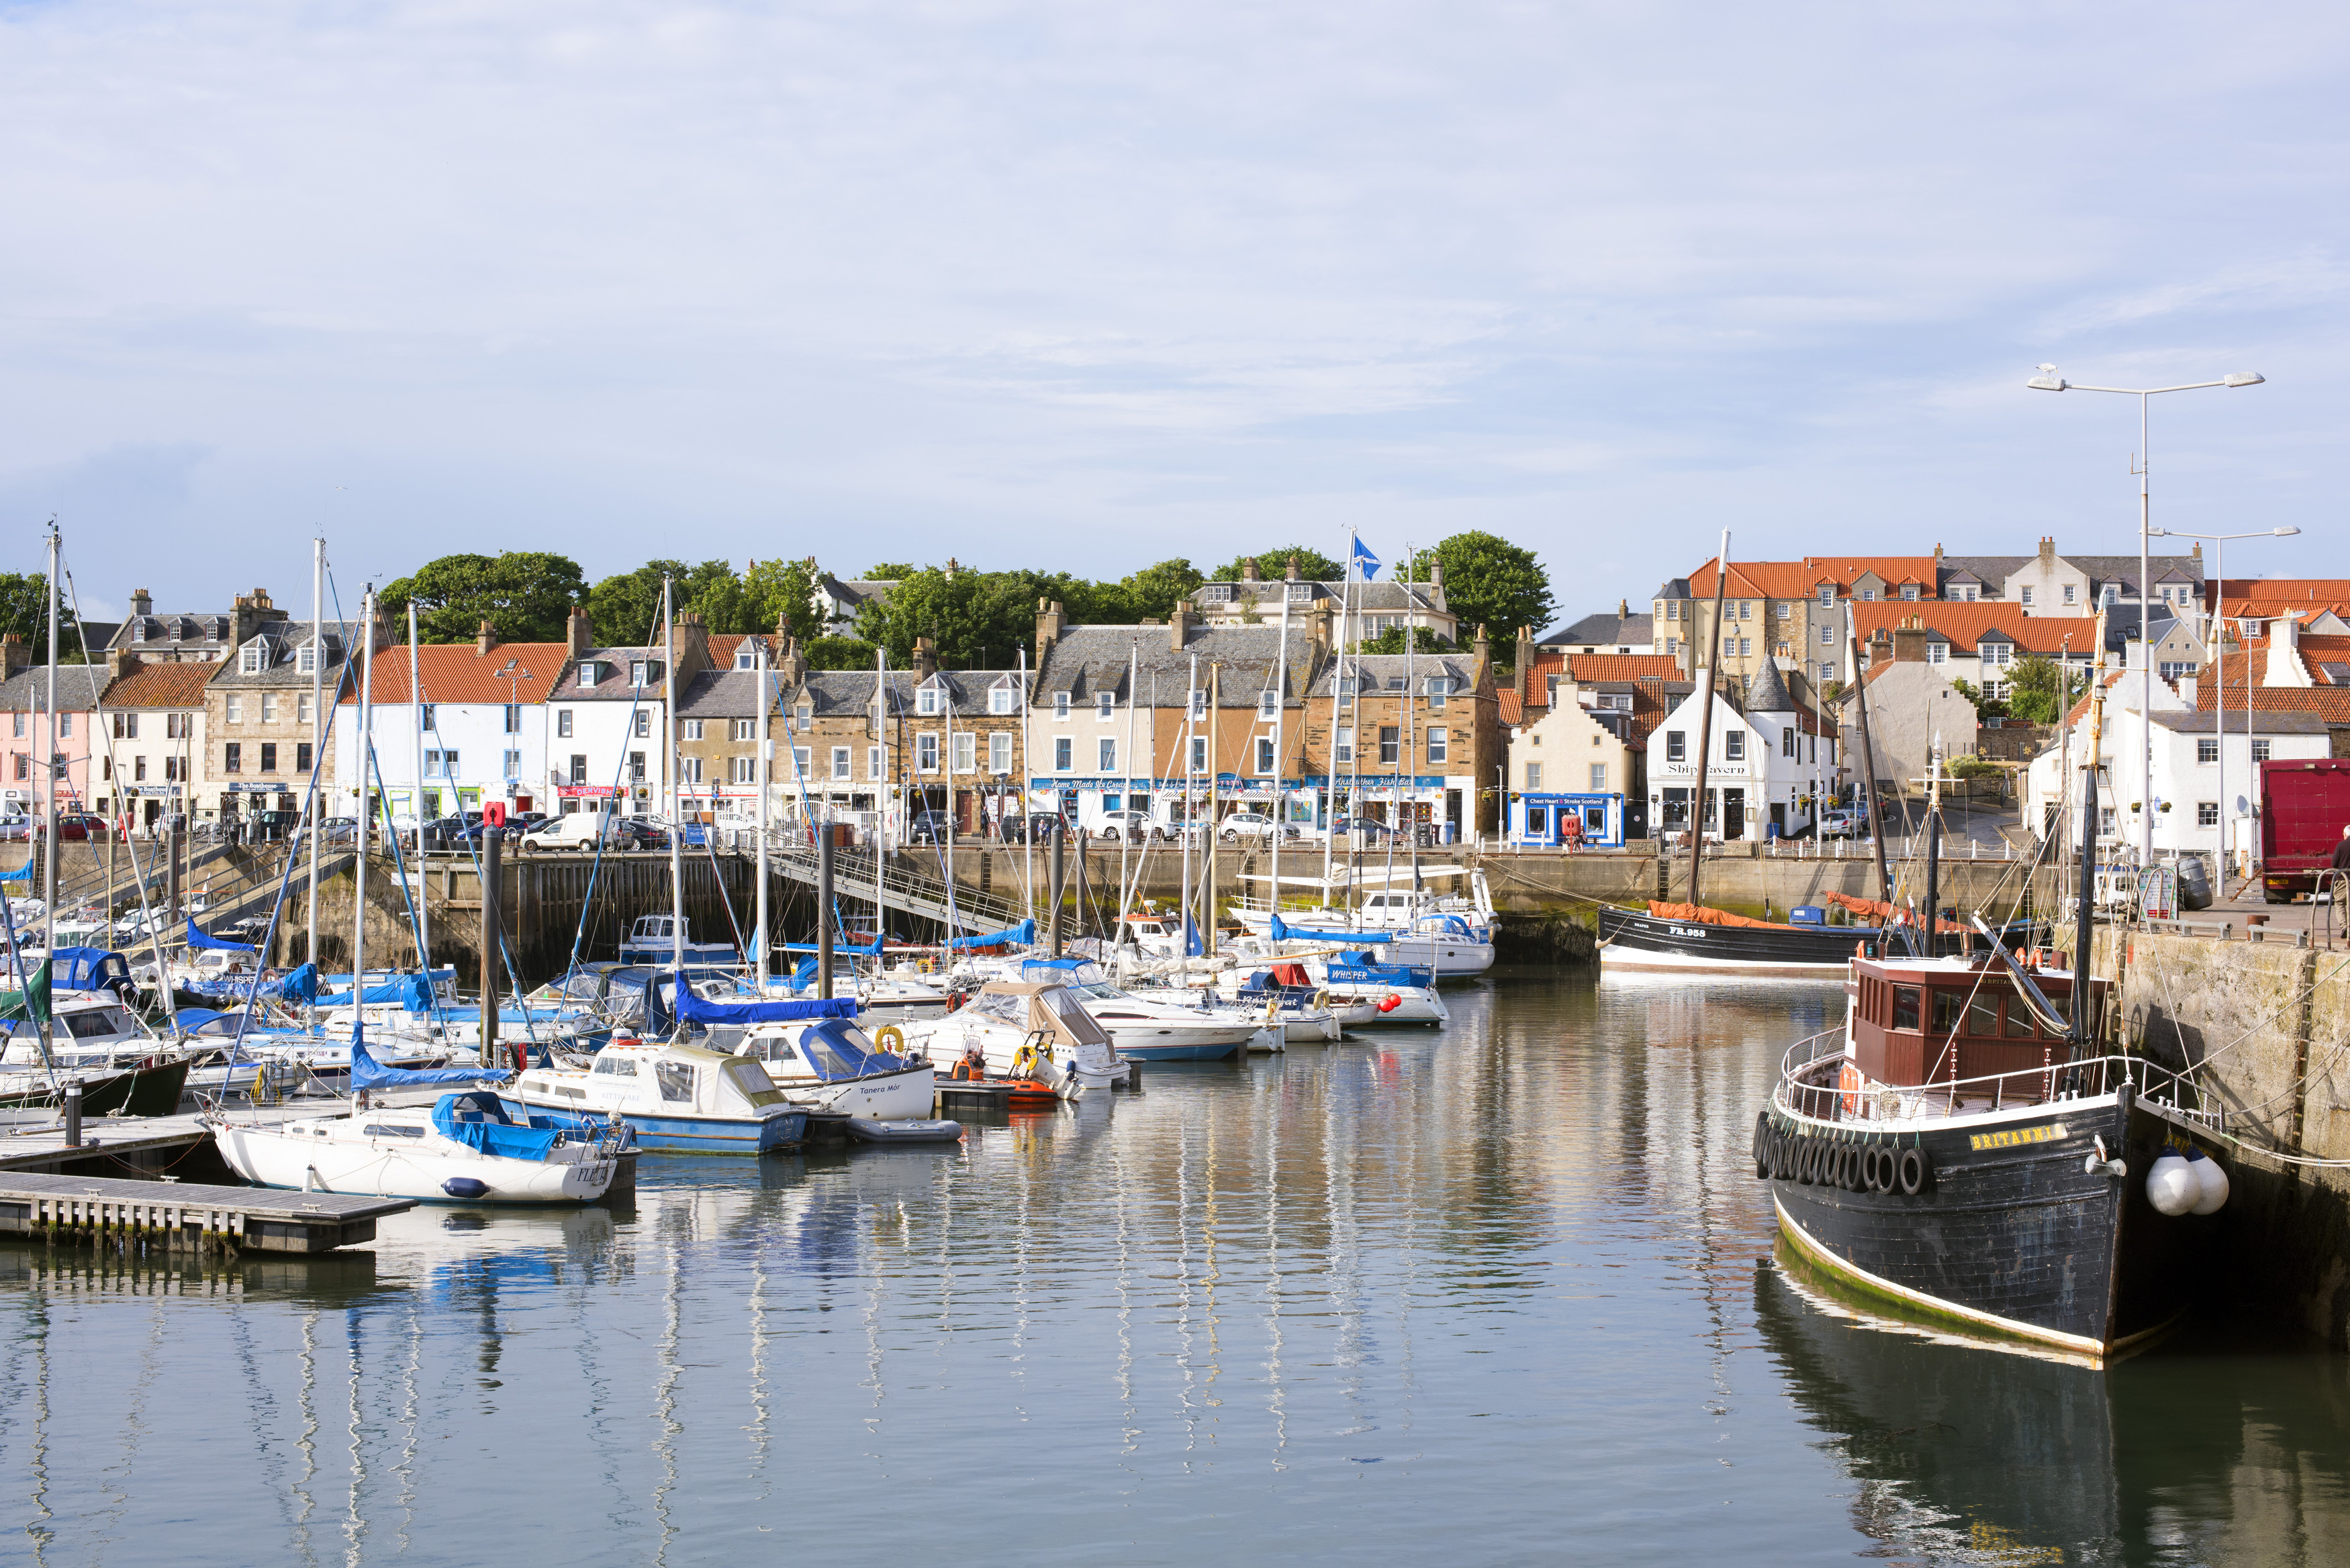 Picturesque view of a tranquil Anstruther harbour on the Fife coast in Scotland with moored yachts, pleasure and fishing boats